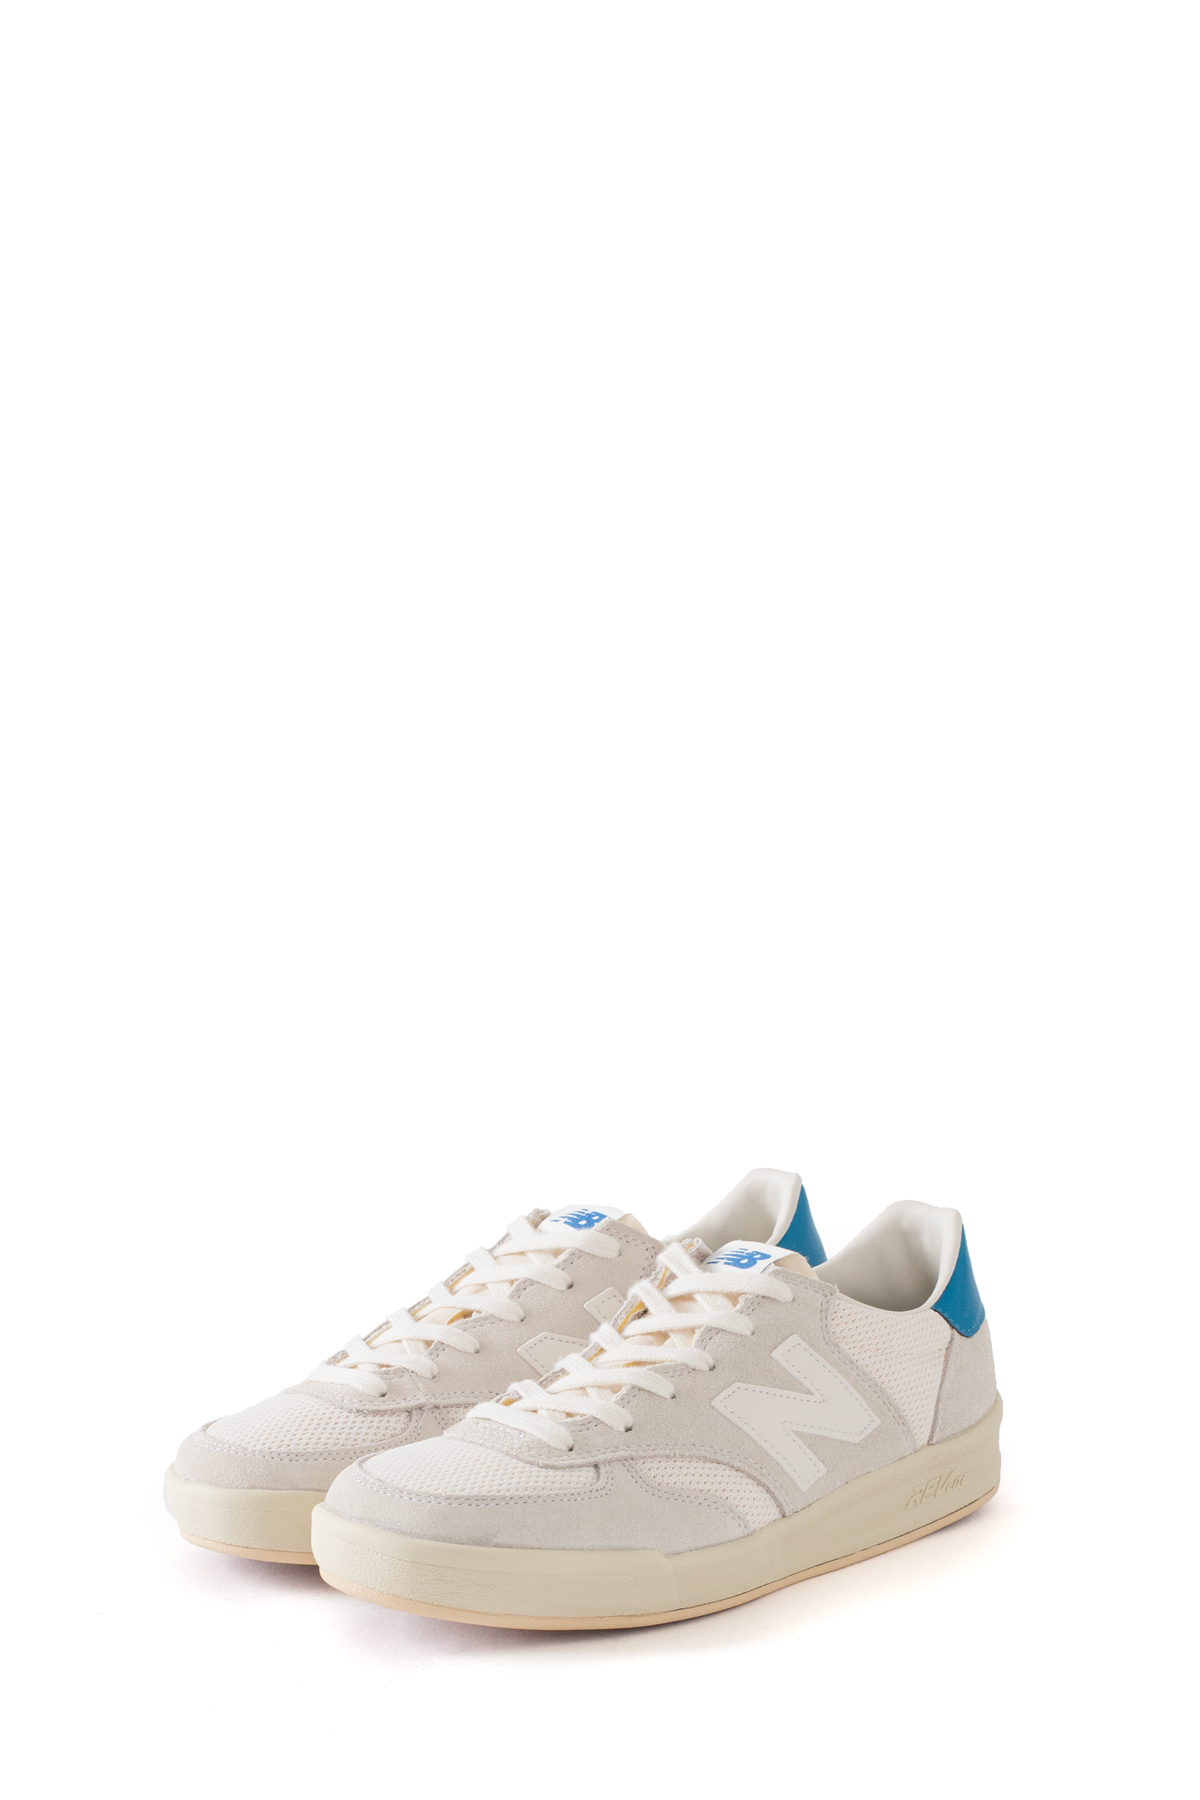 New Balance : CRT300VW (White)